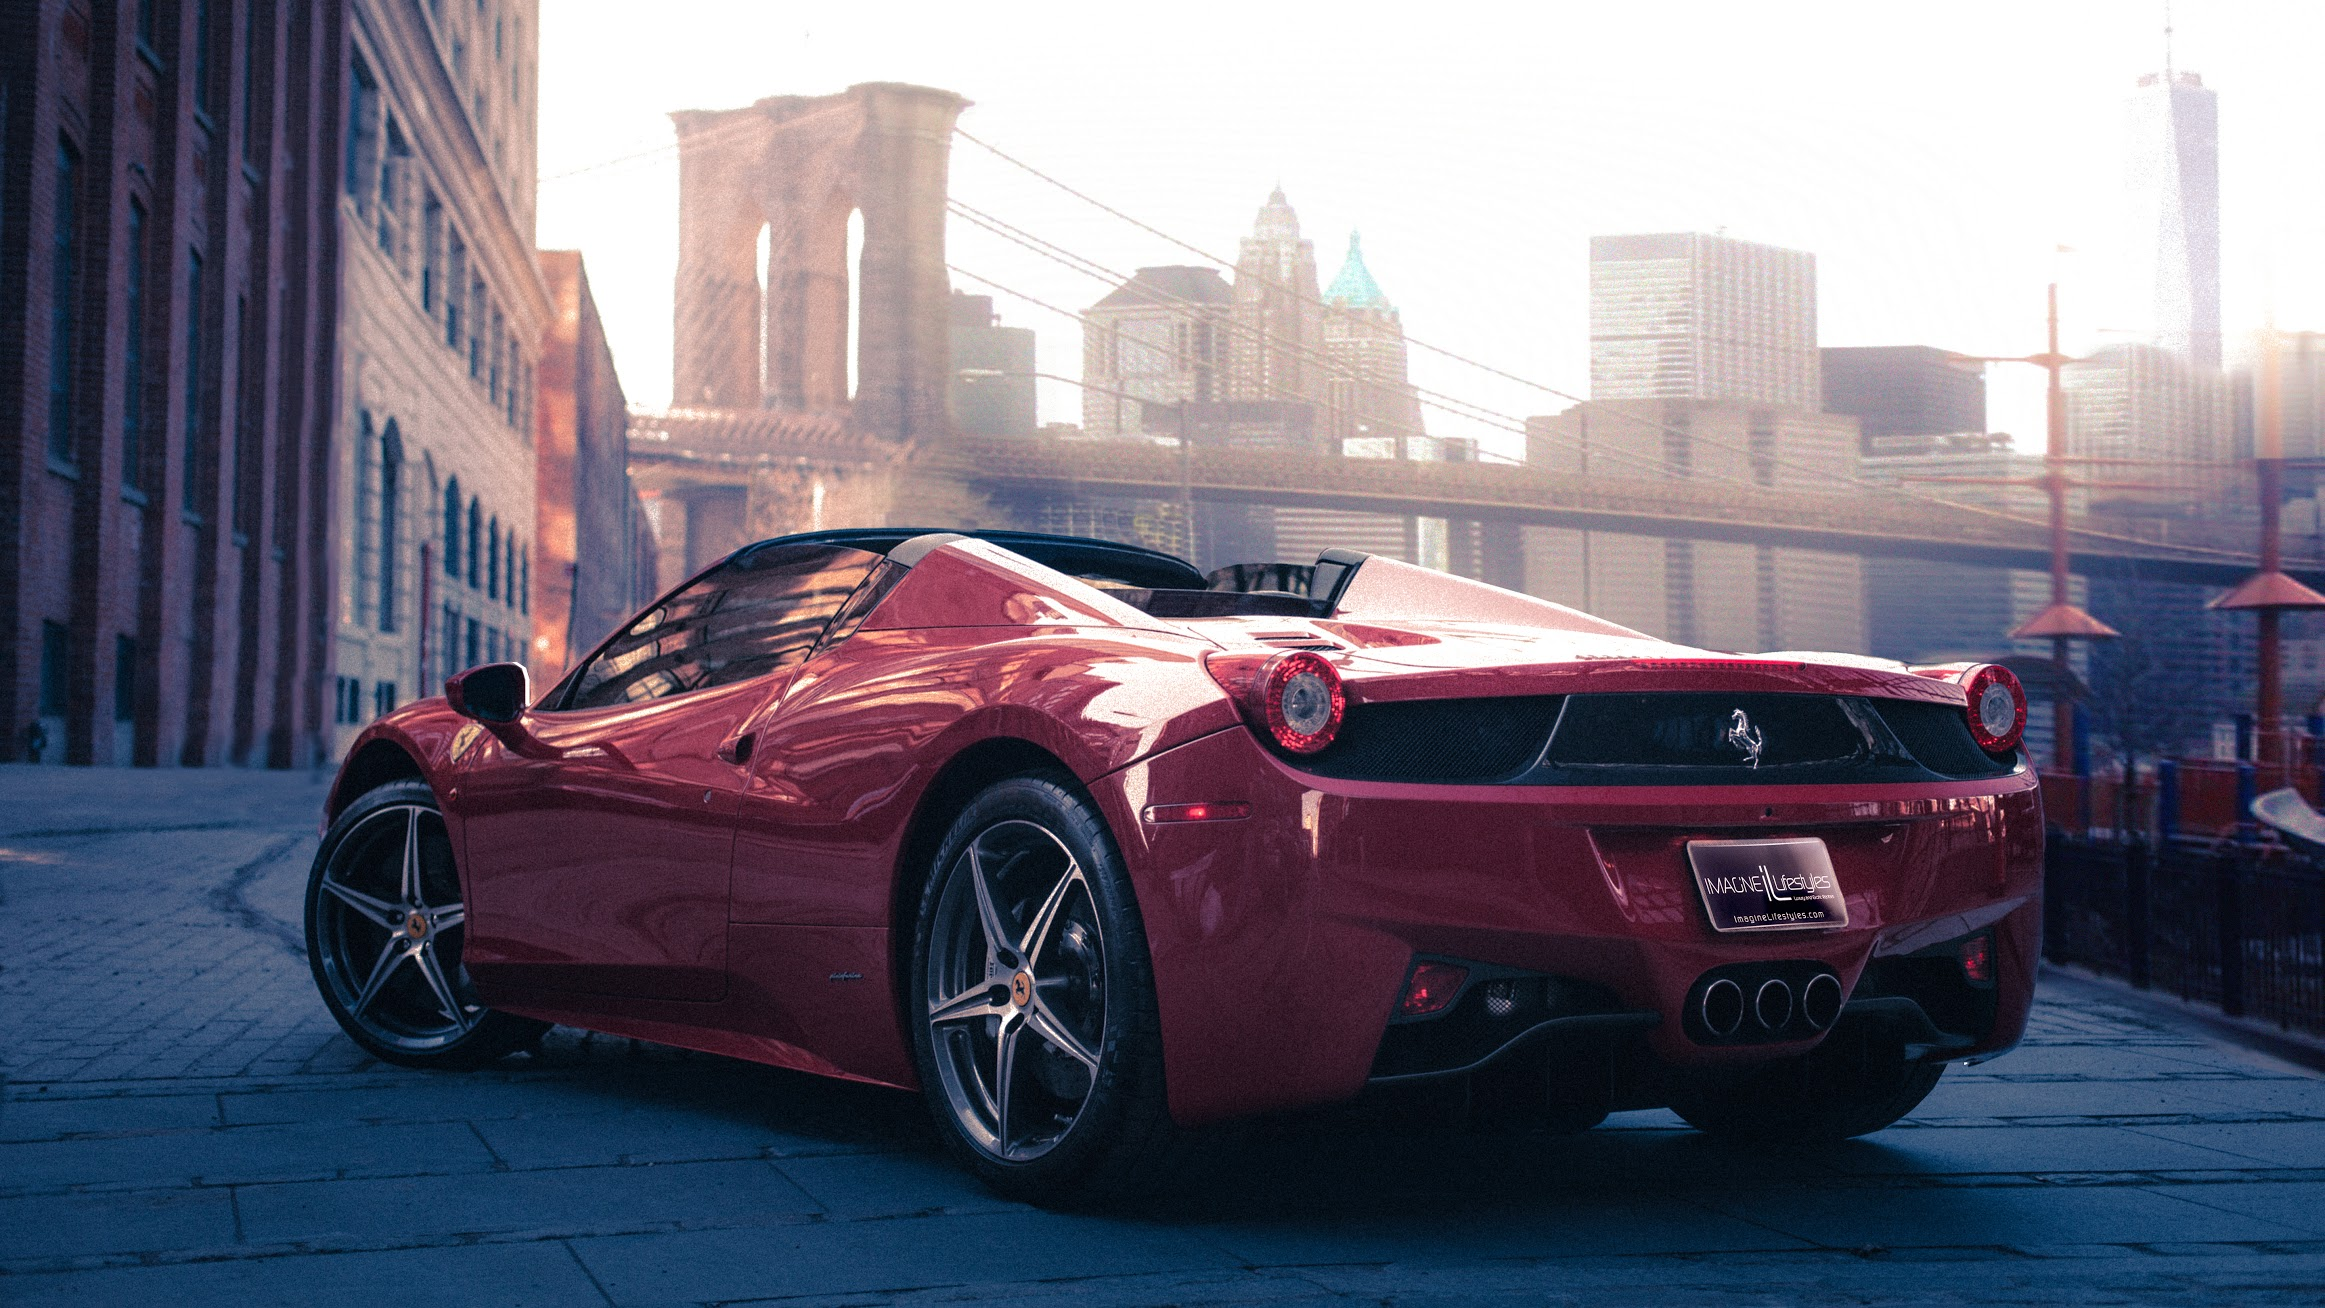 Ferrari 458 Spider - New York